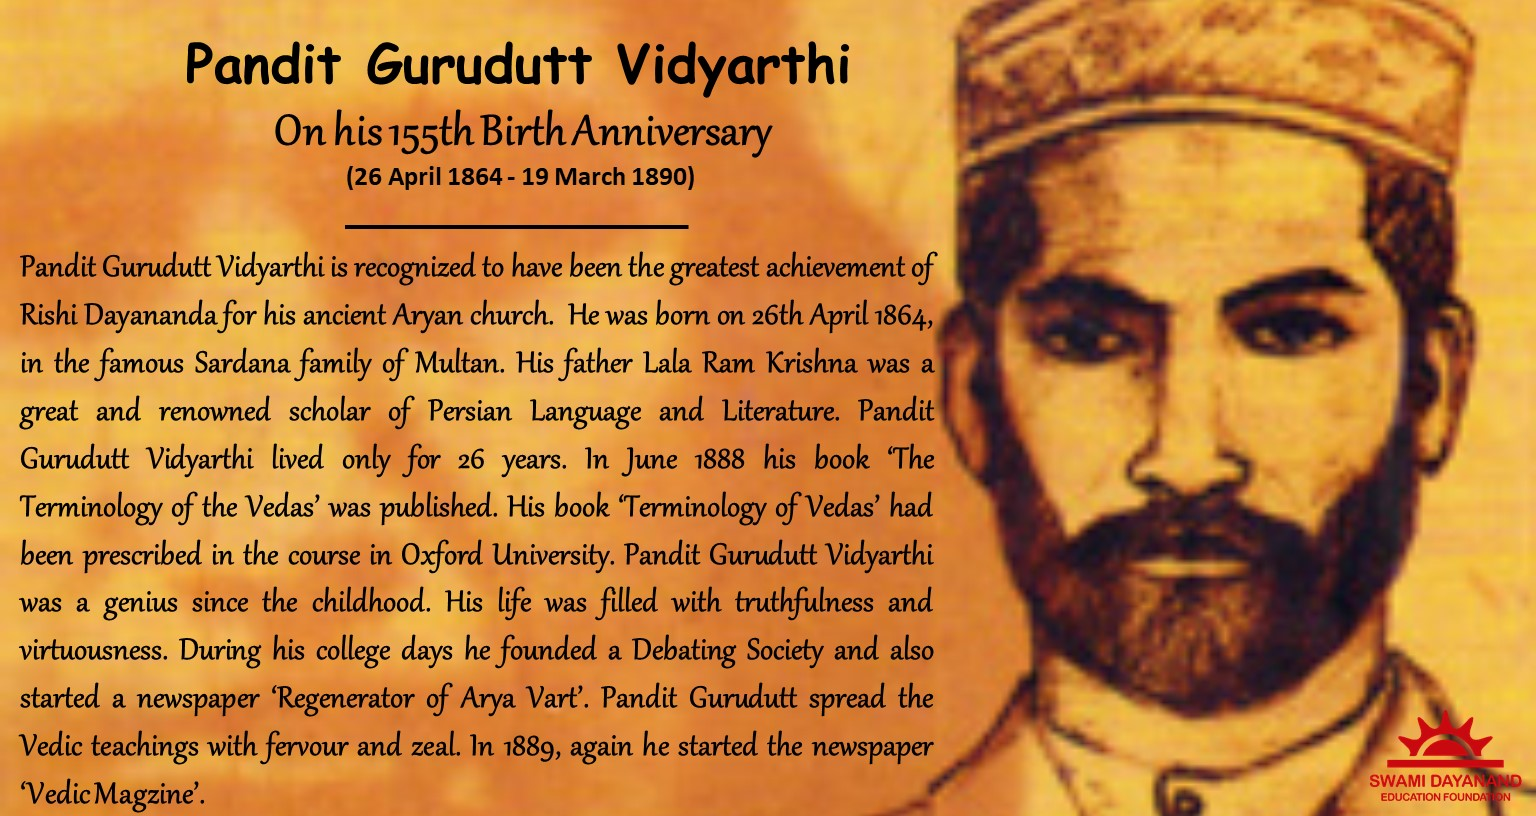 PANDIT GURUDUTT VIDYARTHI  (26th Apr 1864 - 19th Mar 1890)